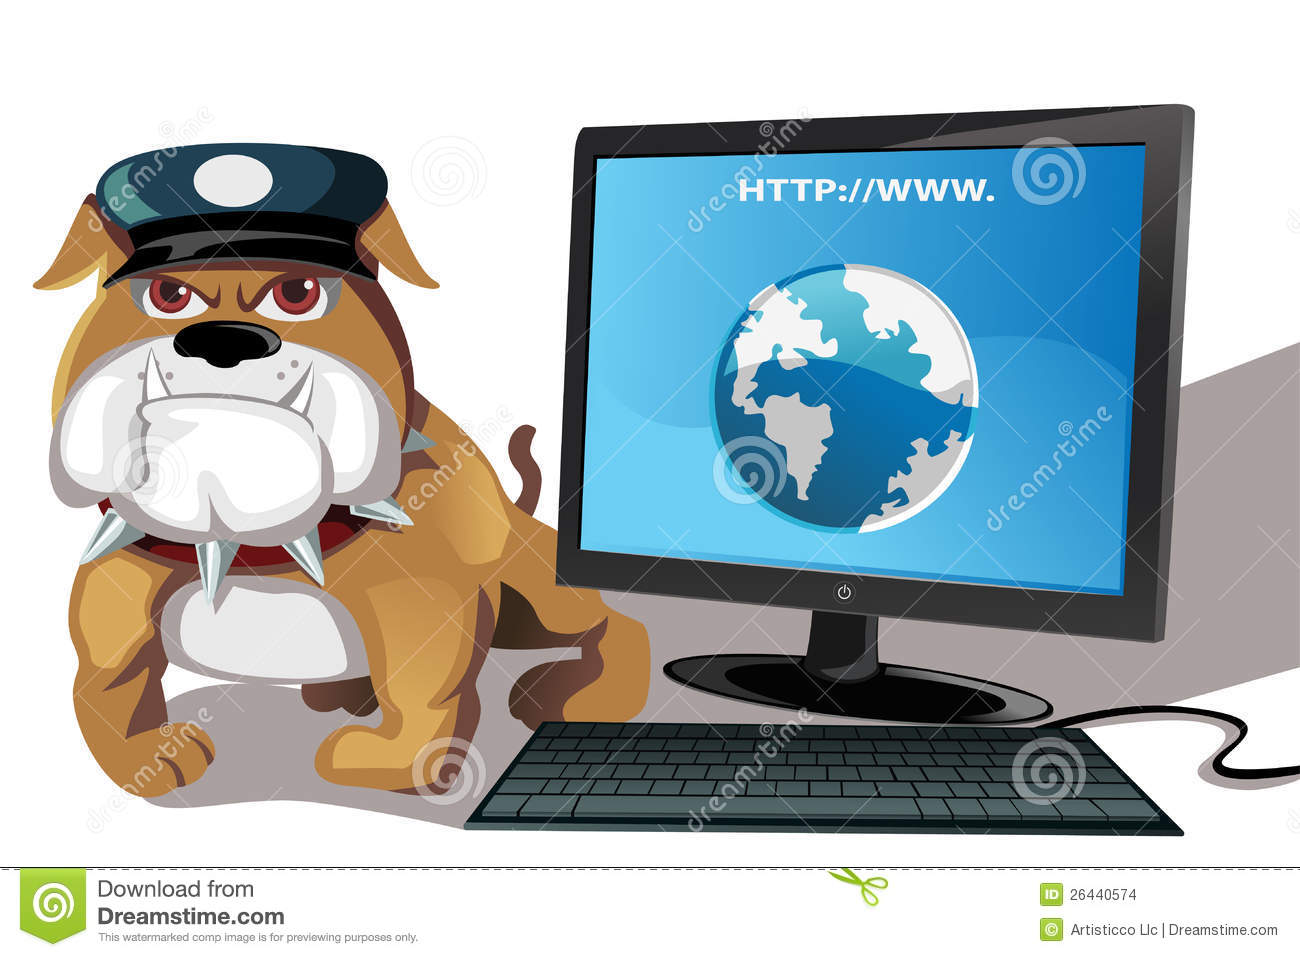 vector illustration of internet or computer security concept.